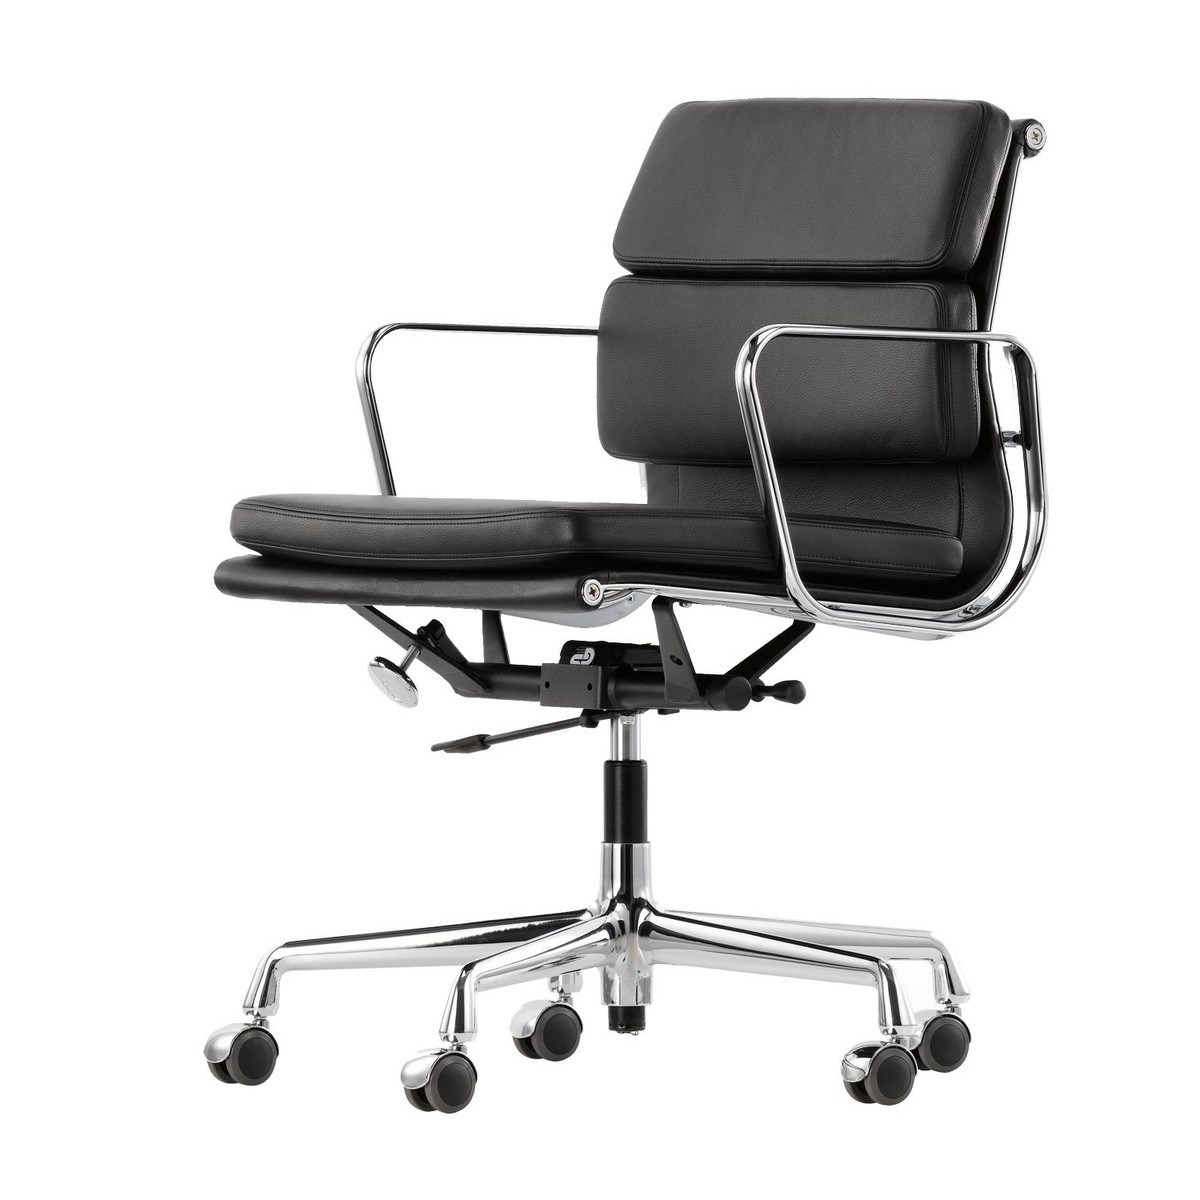 Ea 217 soft pad eames alu chair office chair vitra for Eames burostuhl replica